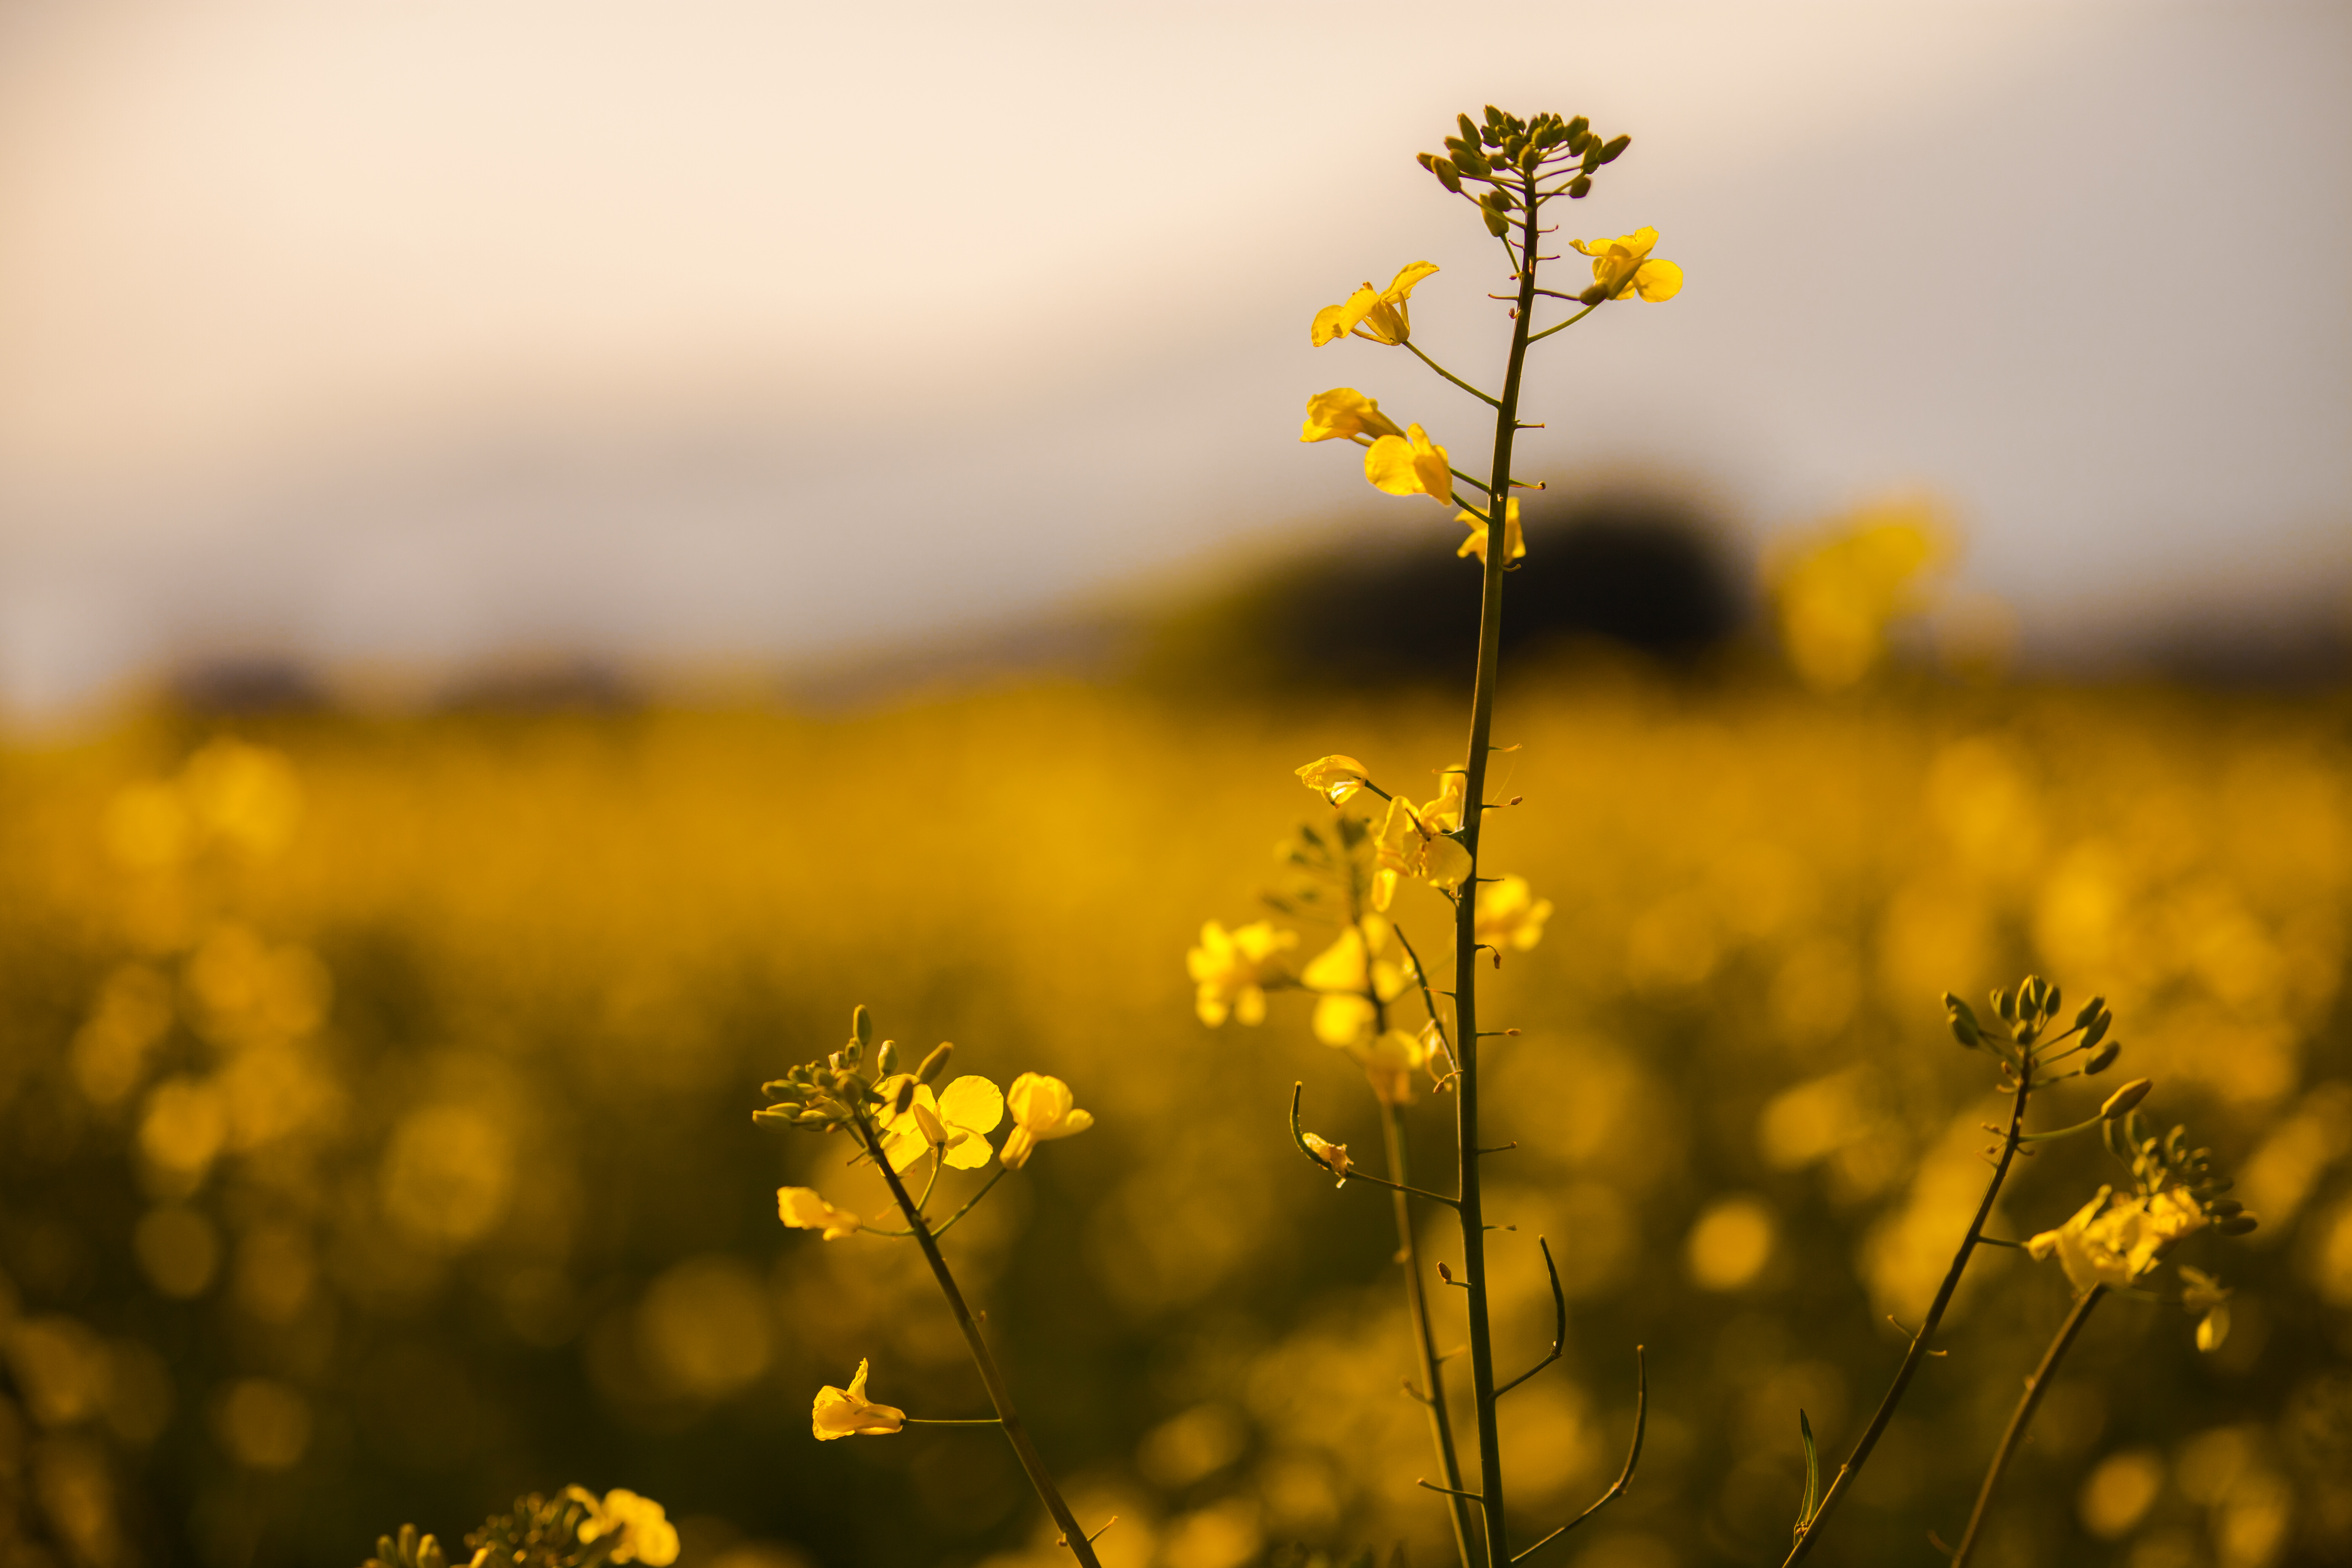 Yellow Flower, flowers, field, nature, vegetation